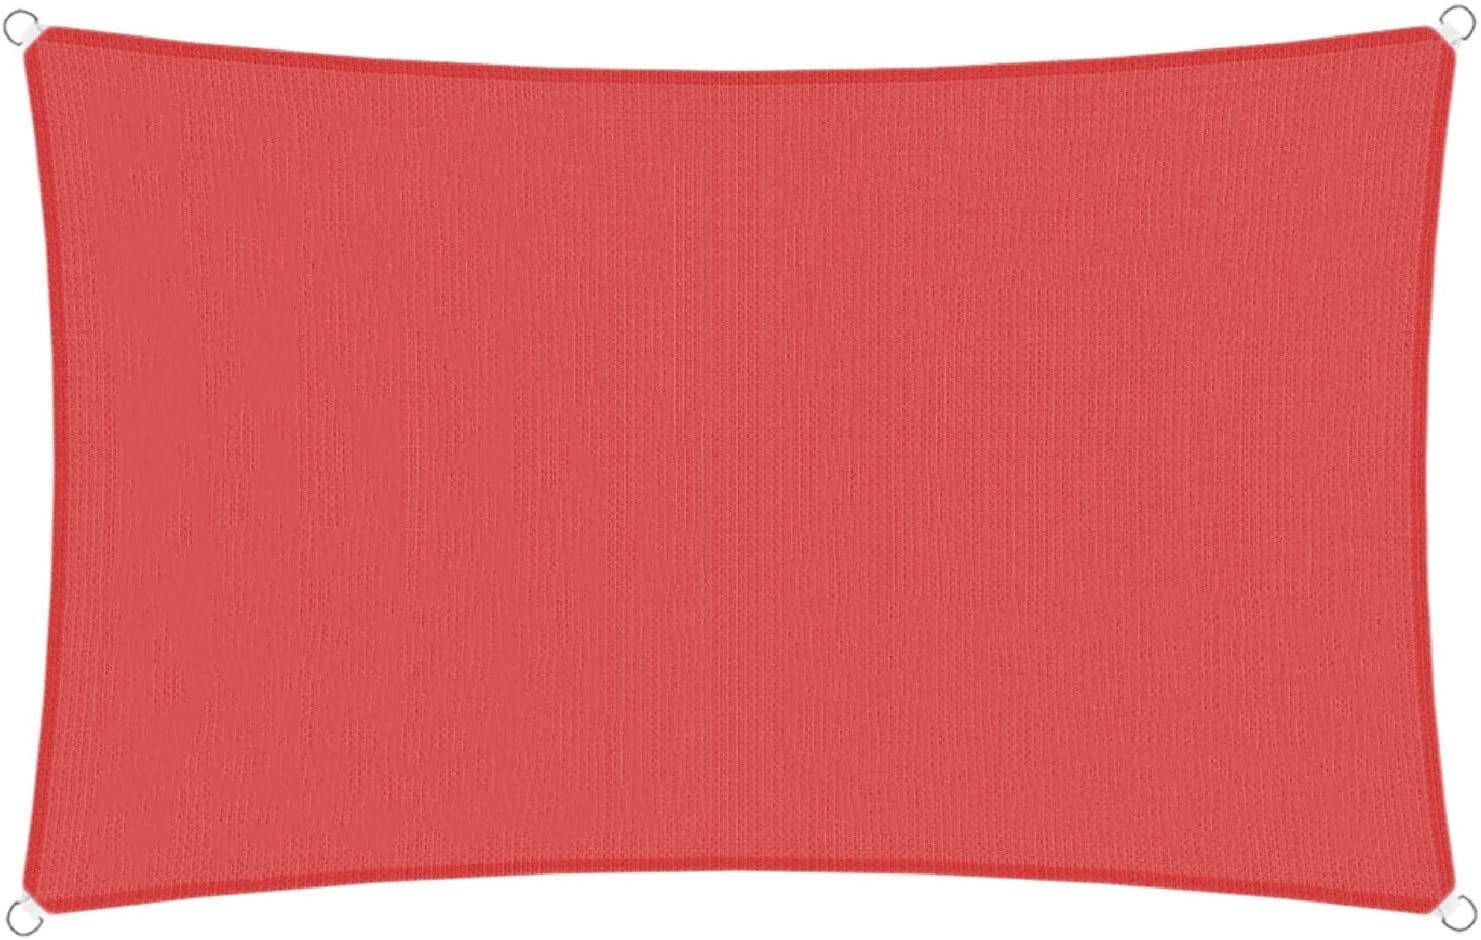 TANG Sunshades Depot 10' x 15' Sun Shade Sail Rectangle Permeable Canopy Red Customize Commercial Standard 180 GSM HDPE